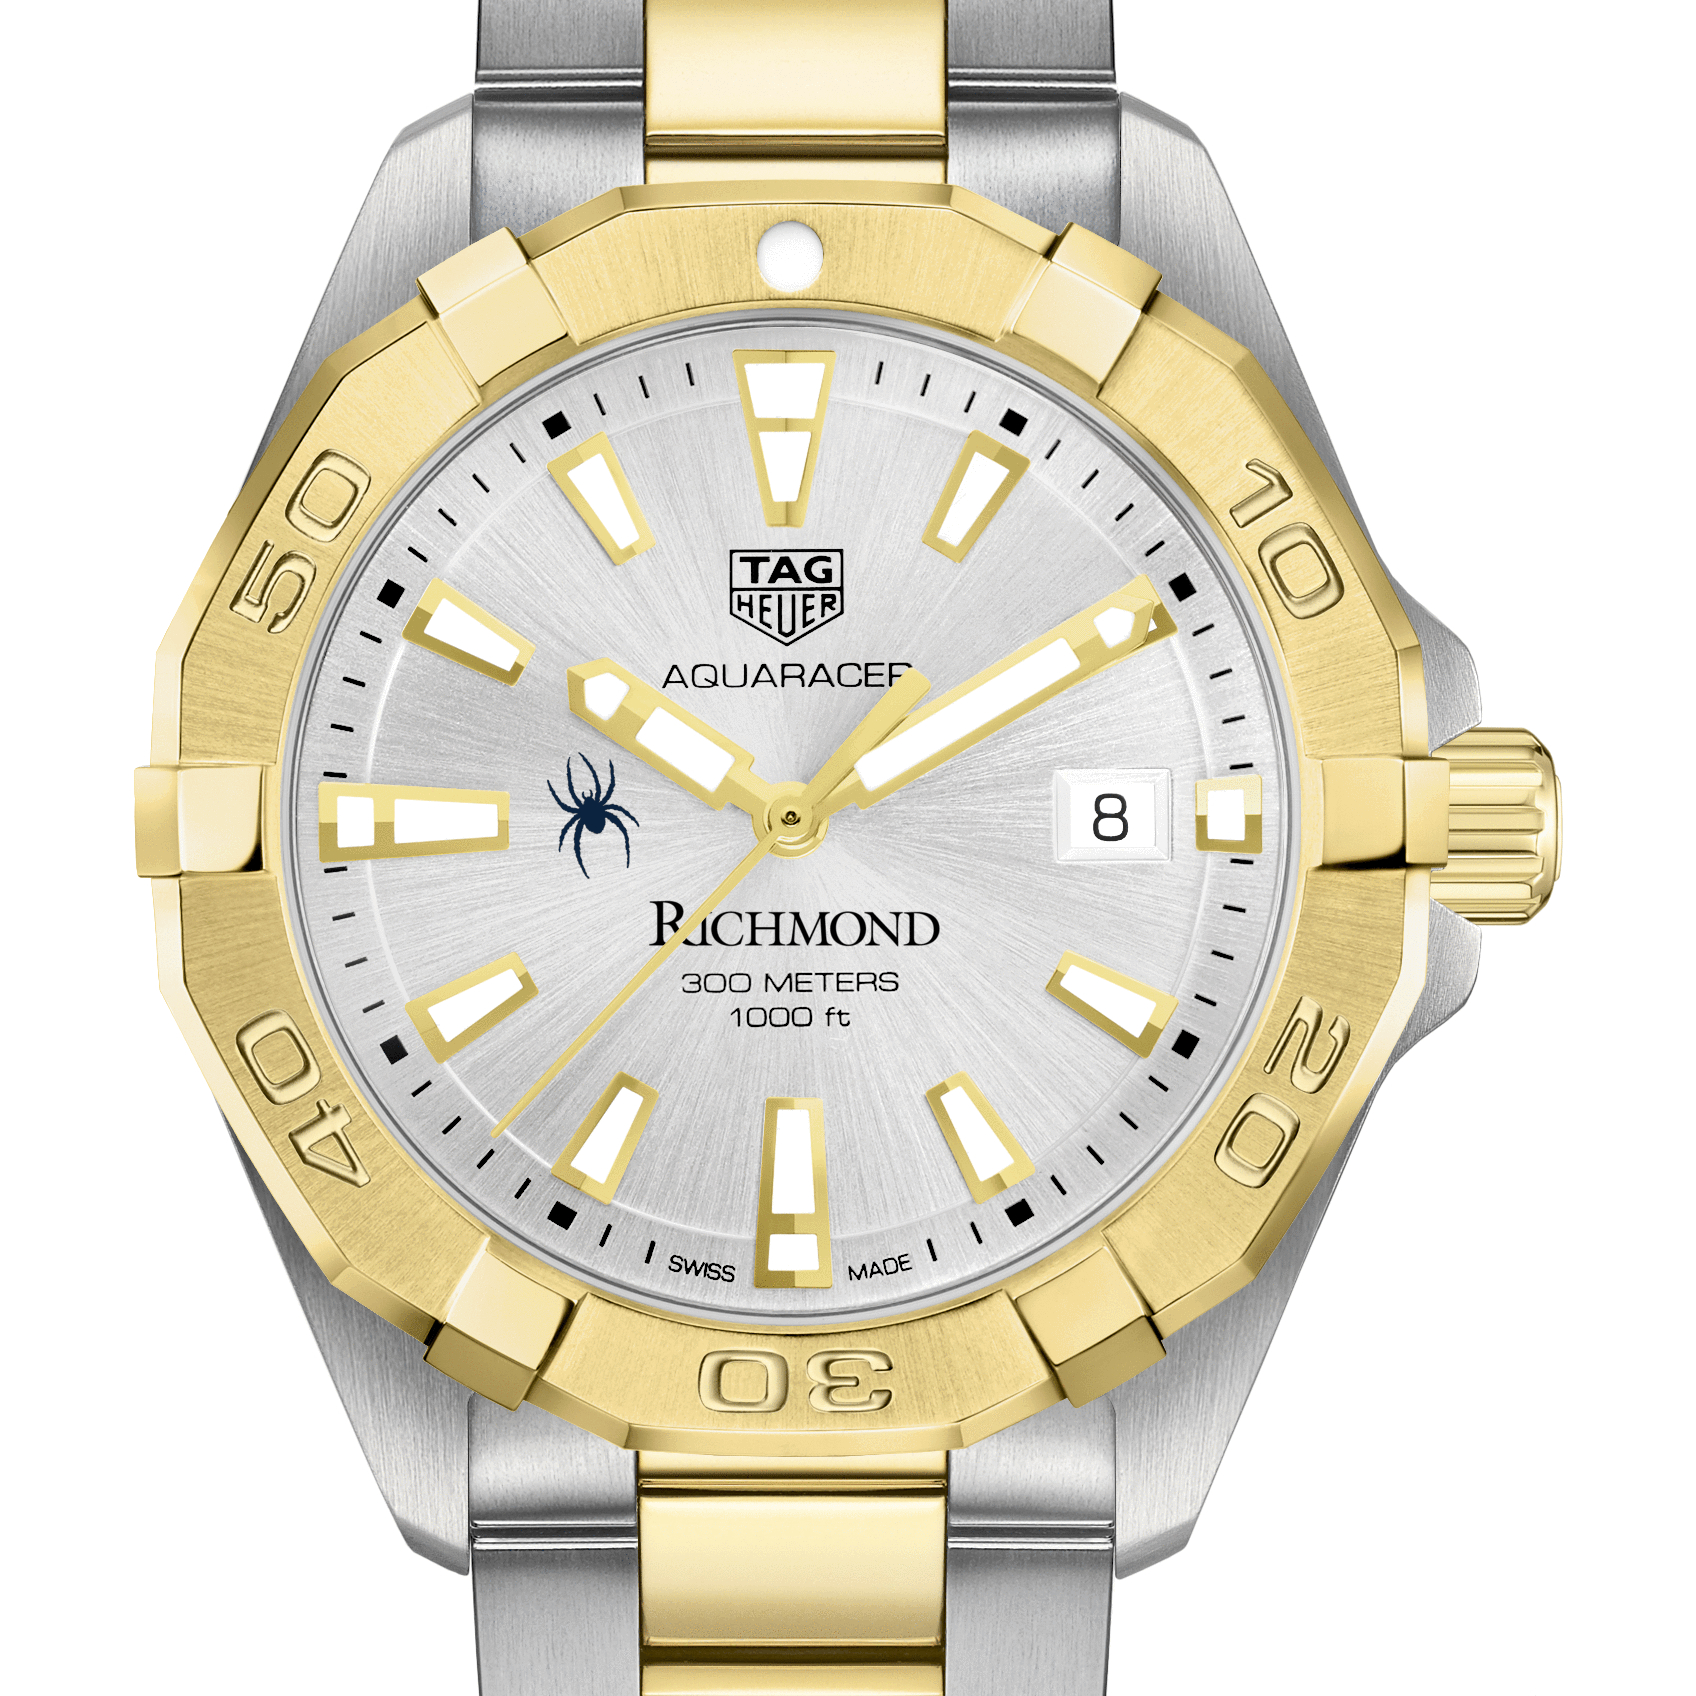 University of Richmond Men's TAG Heuer Two-Tone Aquaracer - Image 1